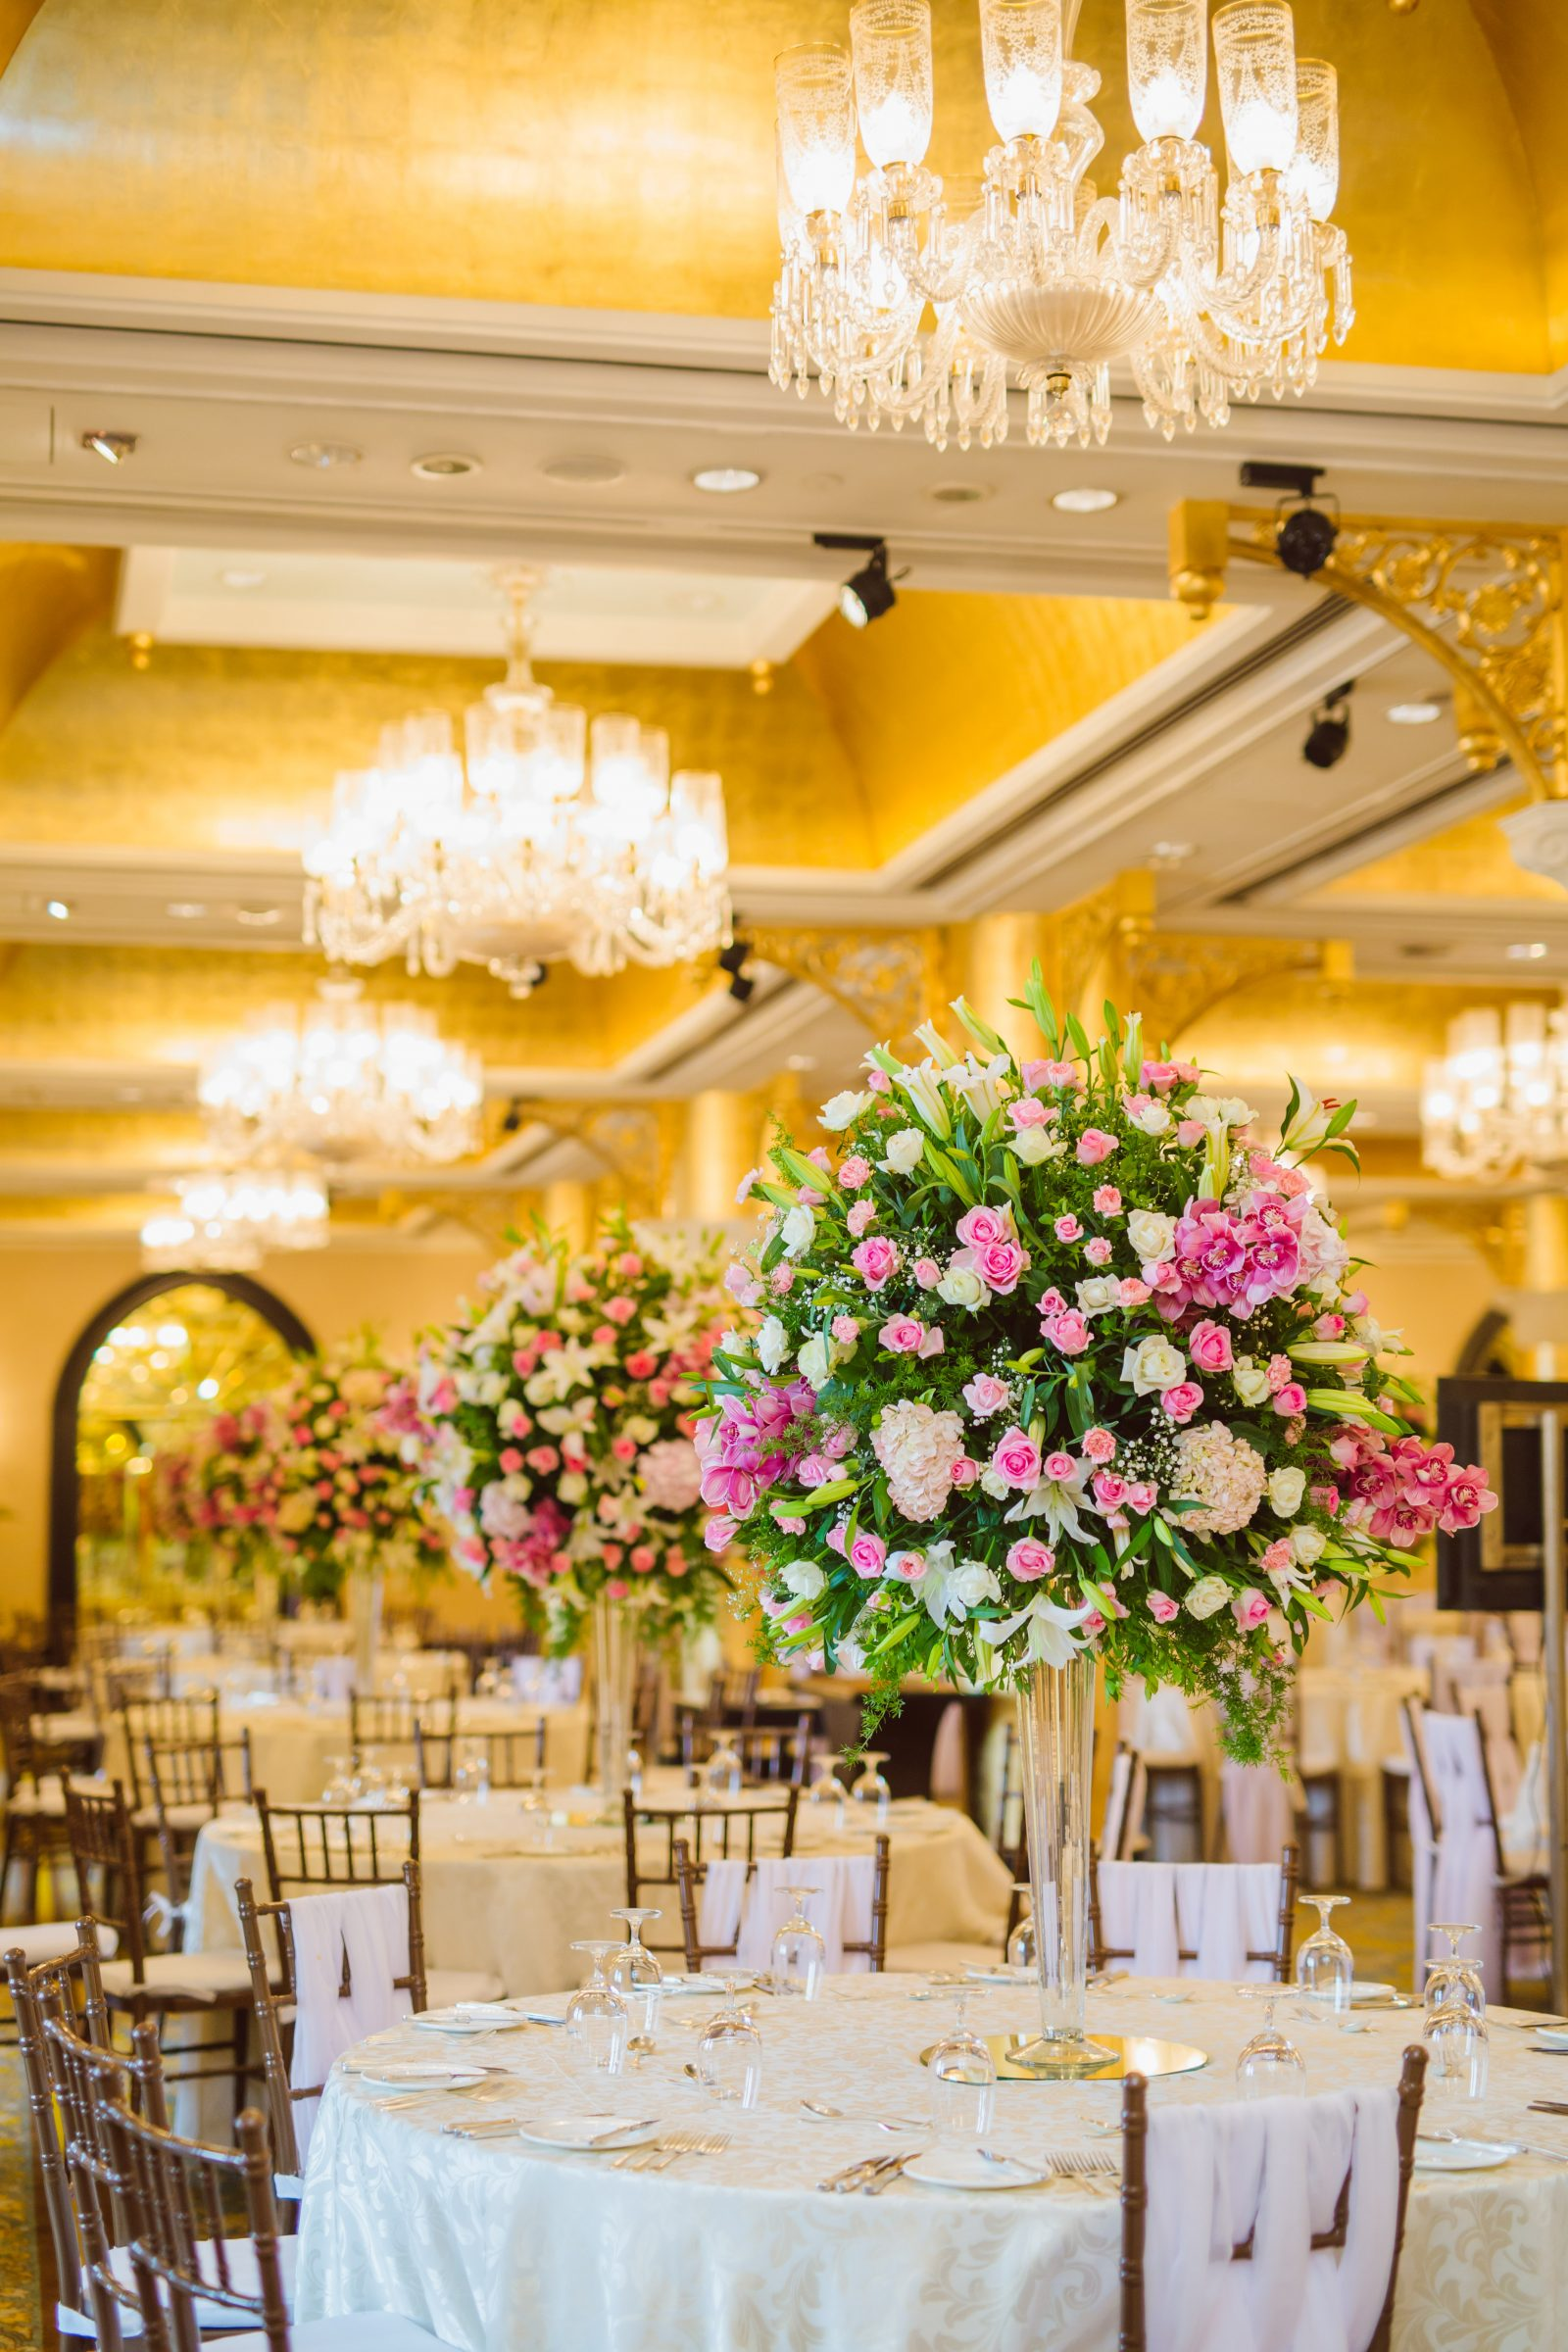 The Most Beautiful Floral Table Centrepieces For Your 2019 Wedding The Urban Guide